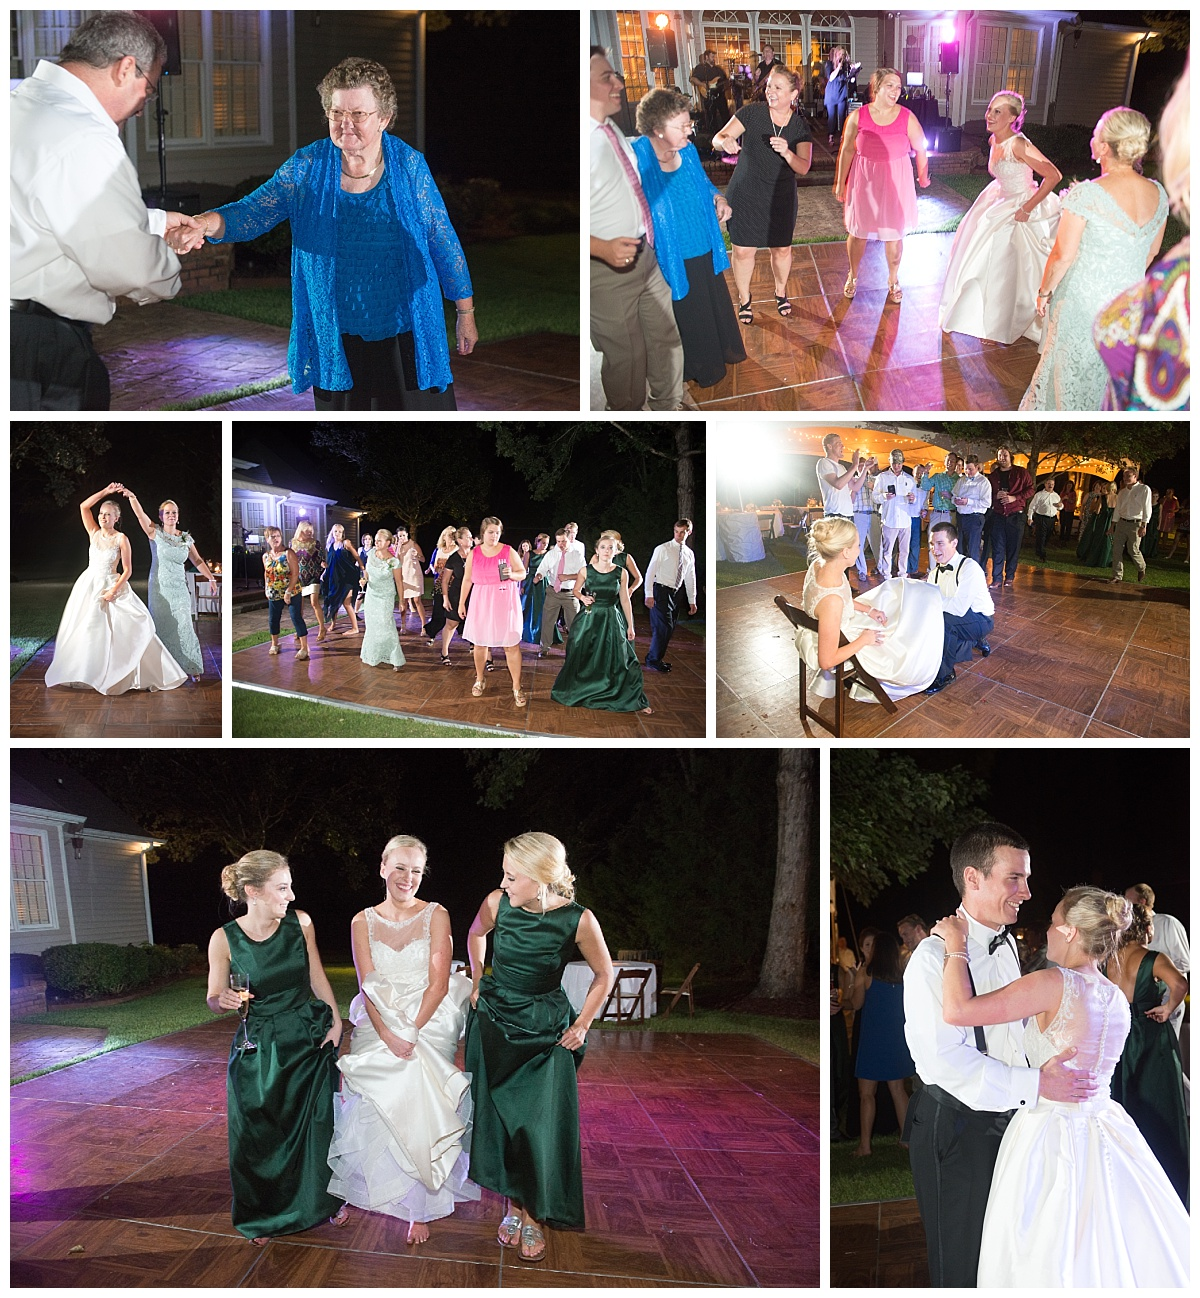 Dancing at the outdoor wedding reception